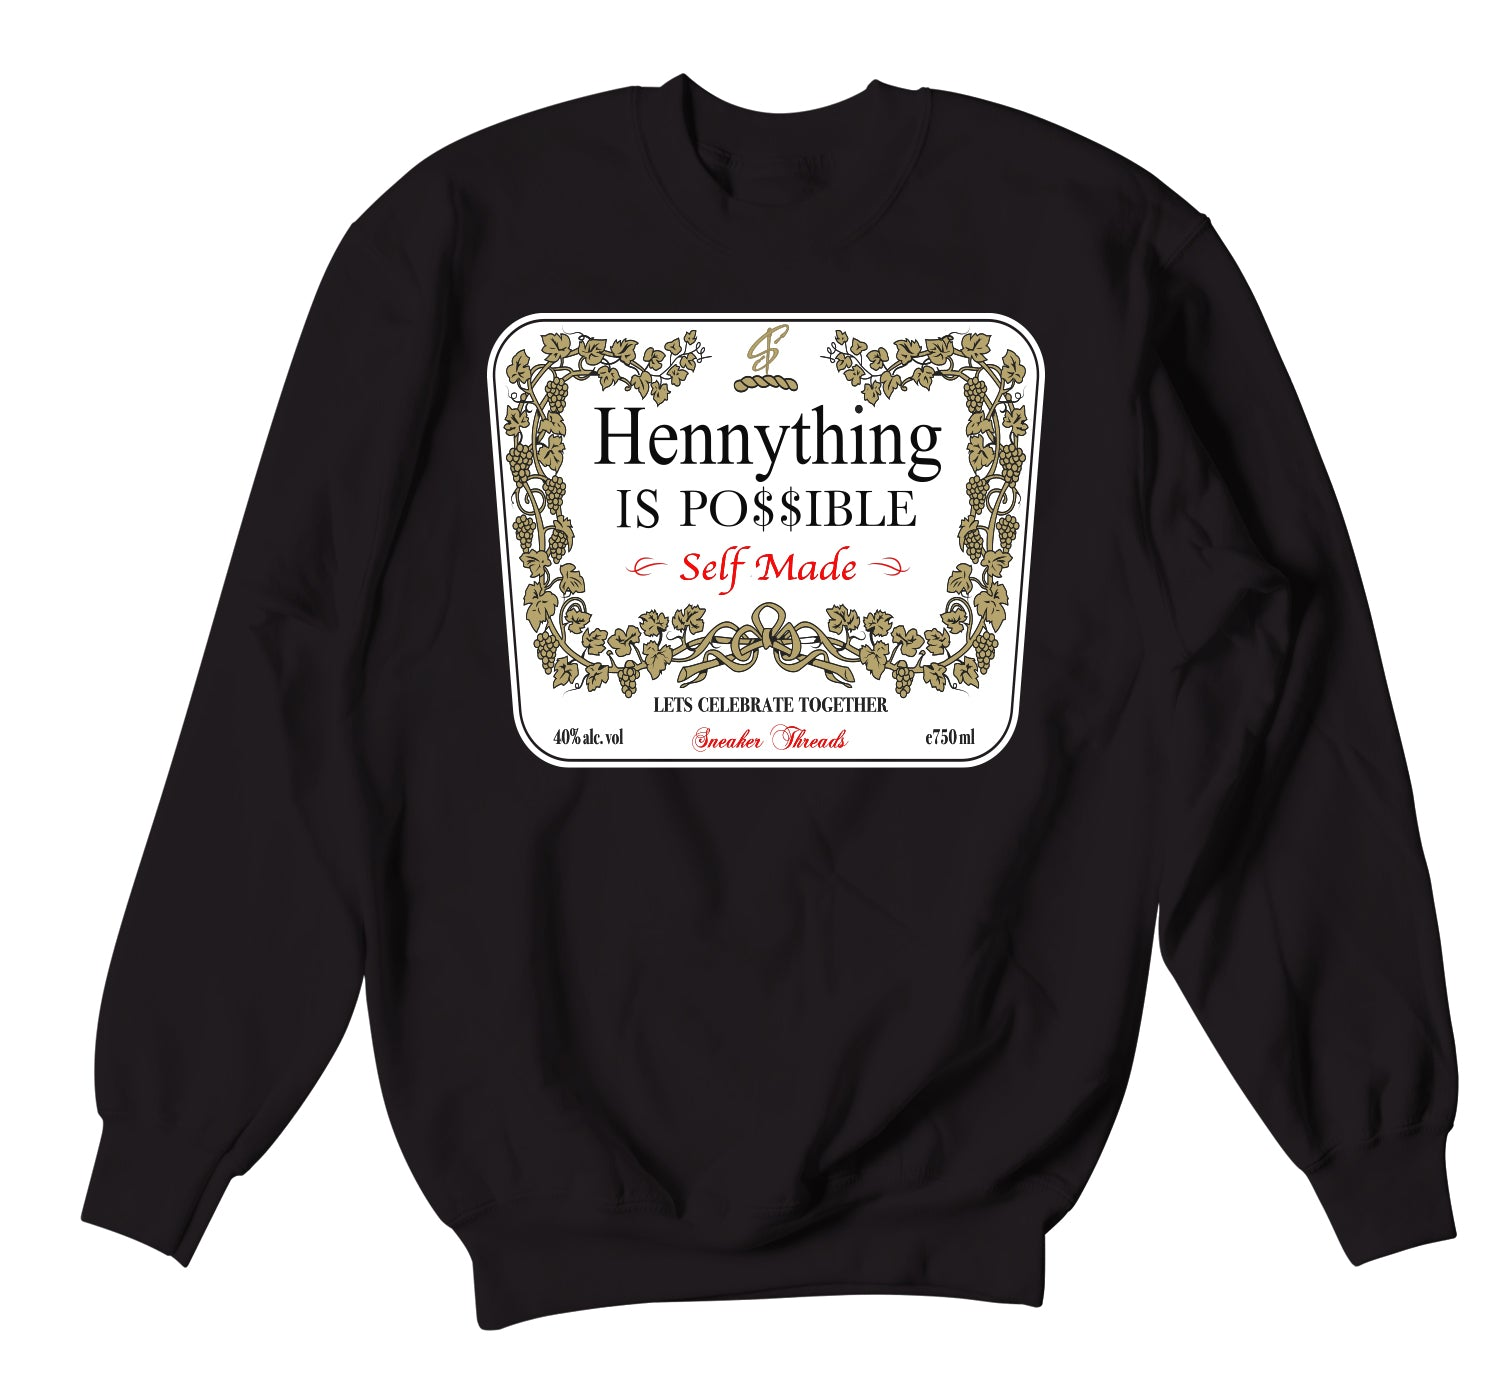 Dunk SB Chicago Hennyting Sweater